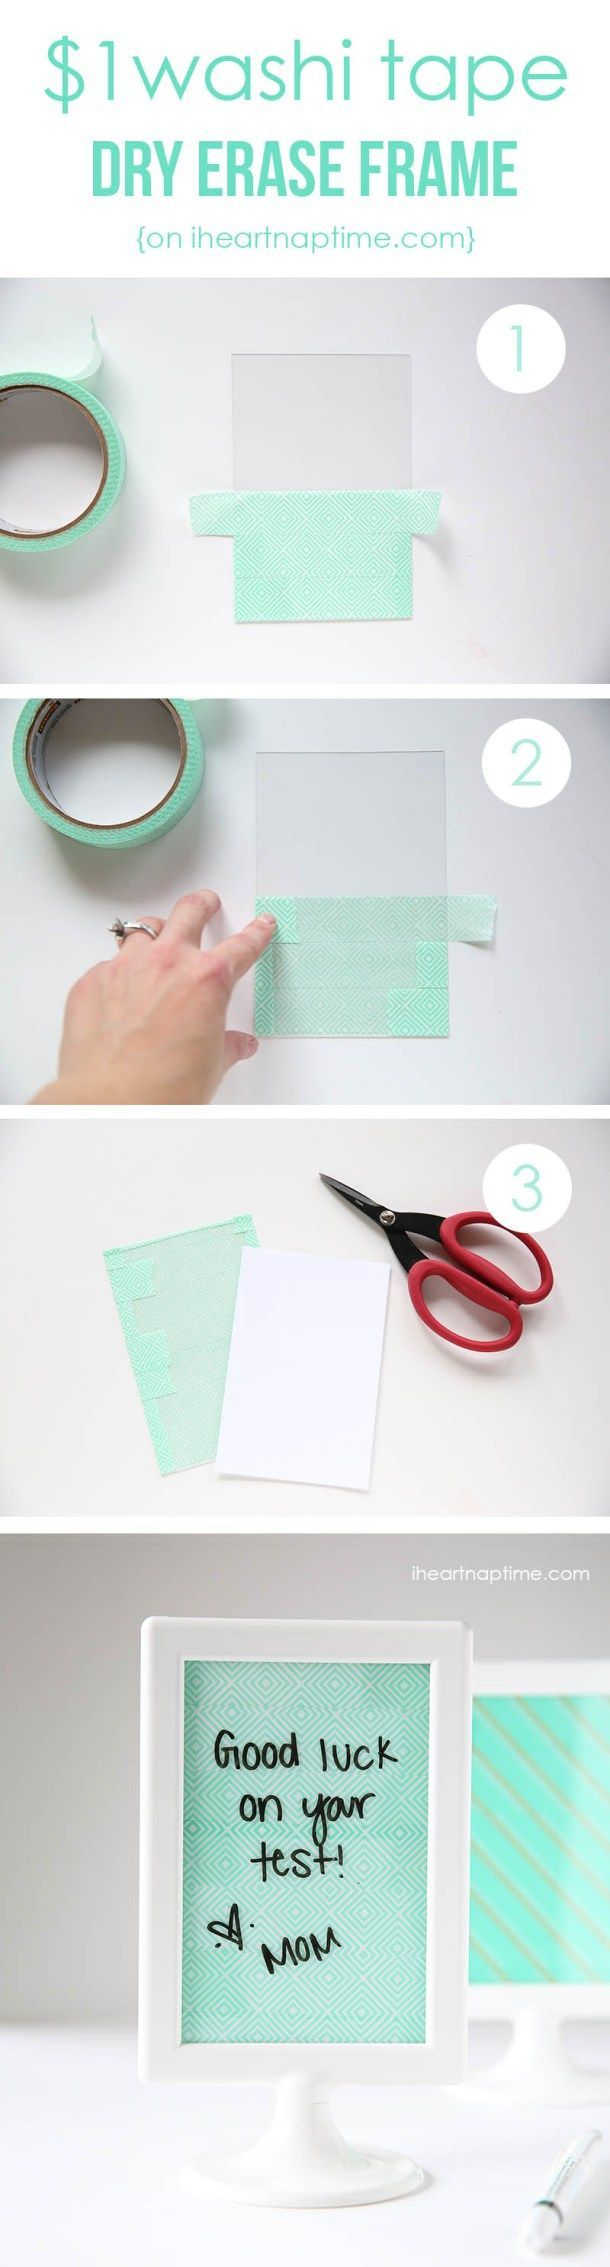 DIY Back to School Projects for Teens and Tweens - ONE DOLLAR Stand up Dry Erase…